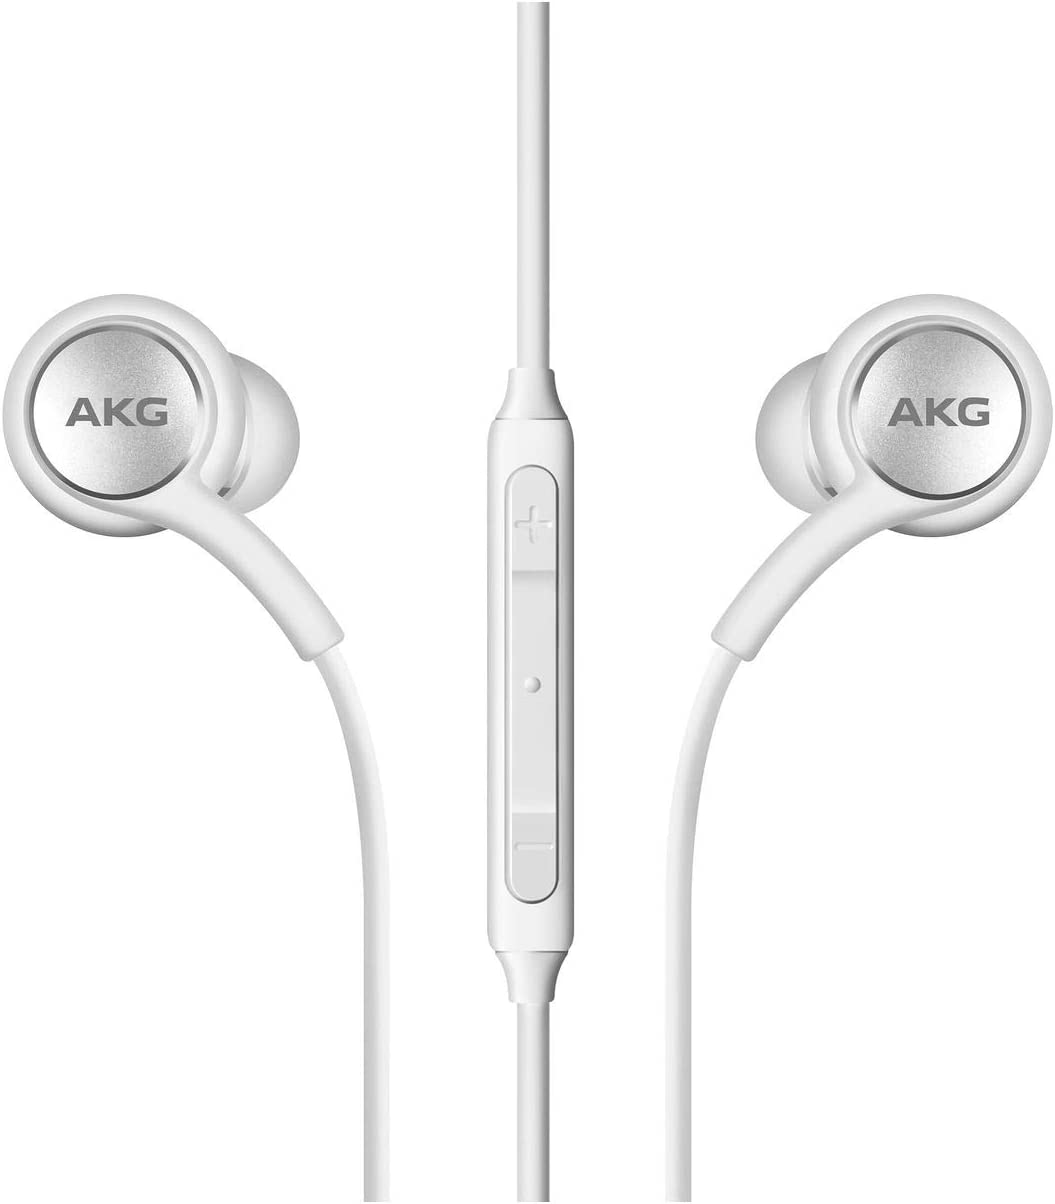 2019 Stereo Headphones For Samsung Galaxy S10 S10e S10 Plus Designed By Akg With Microphone White Electronics